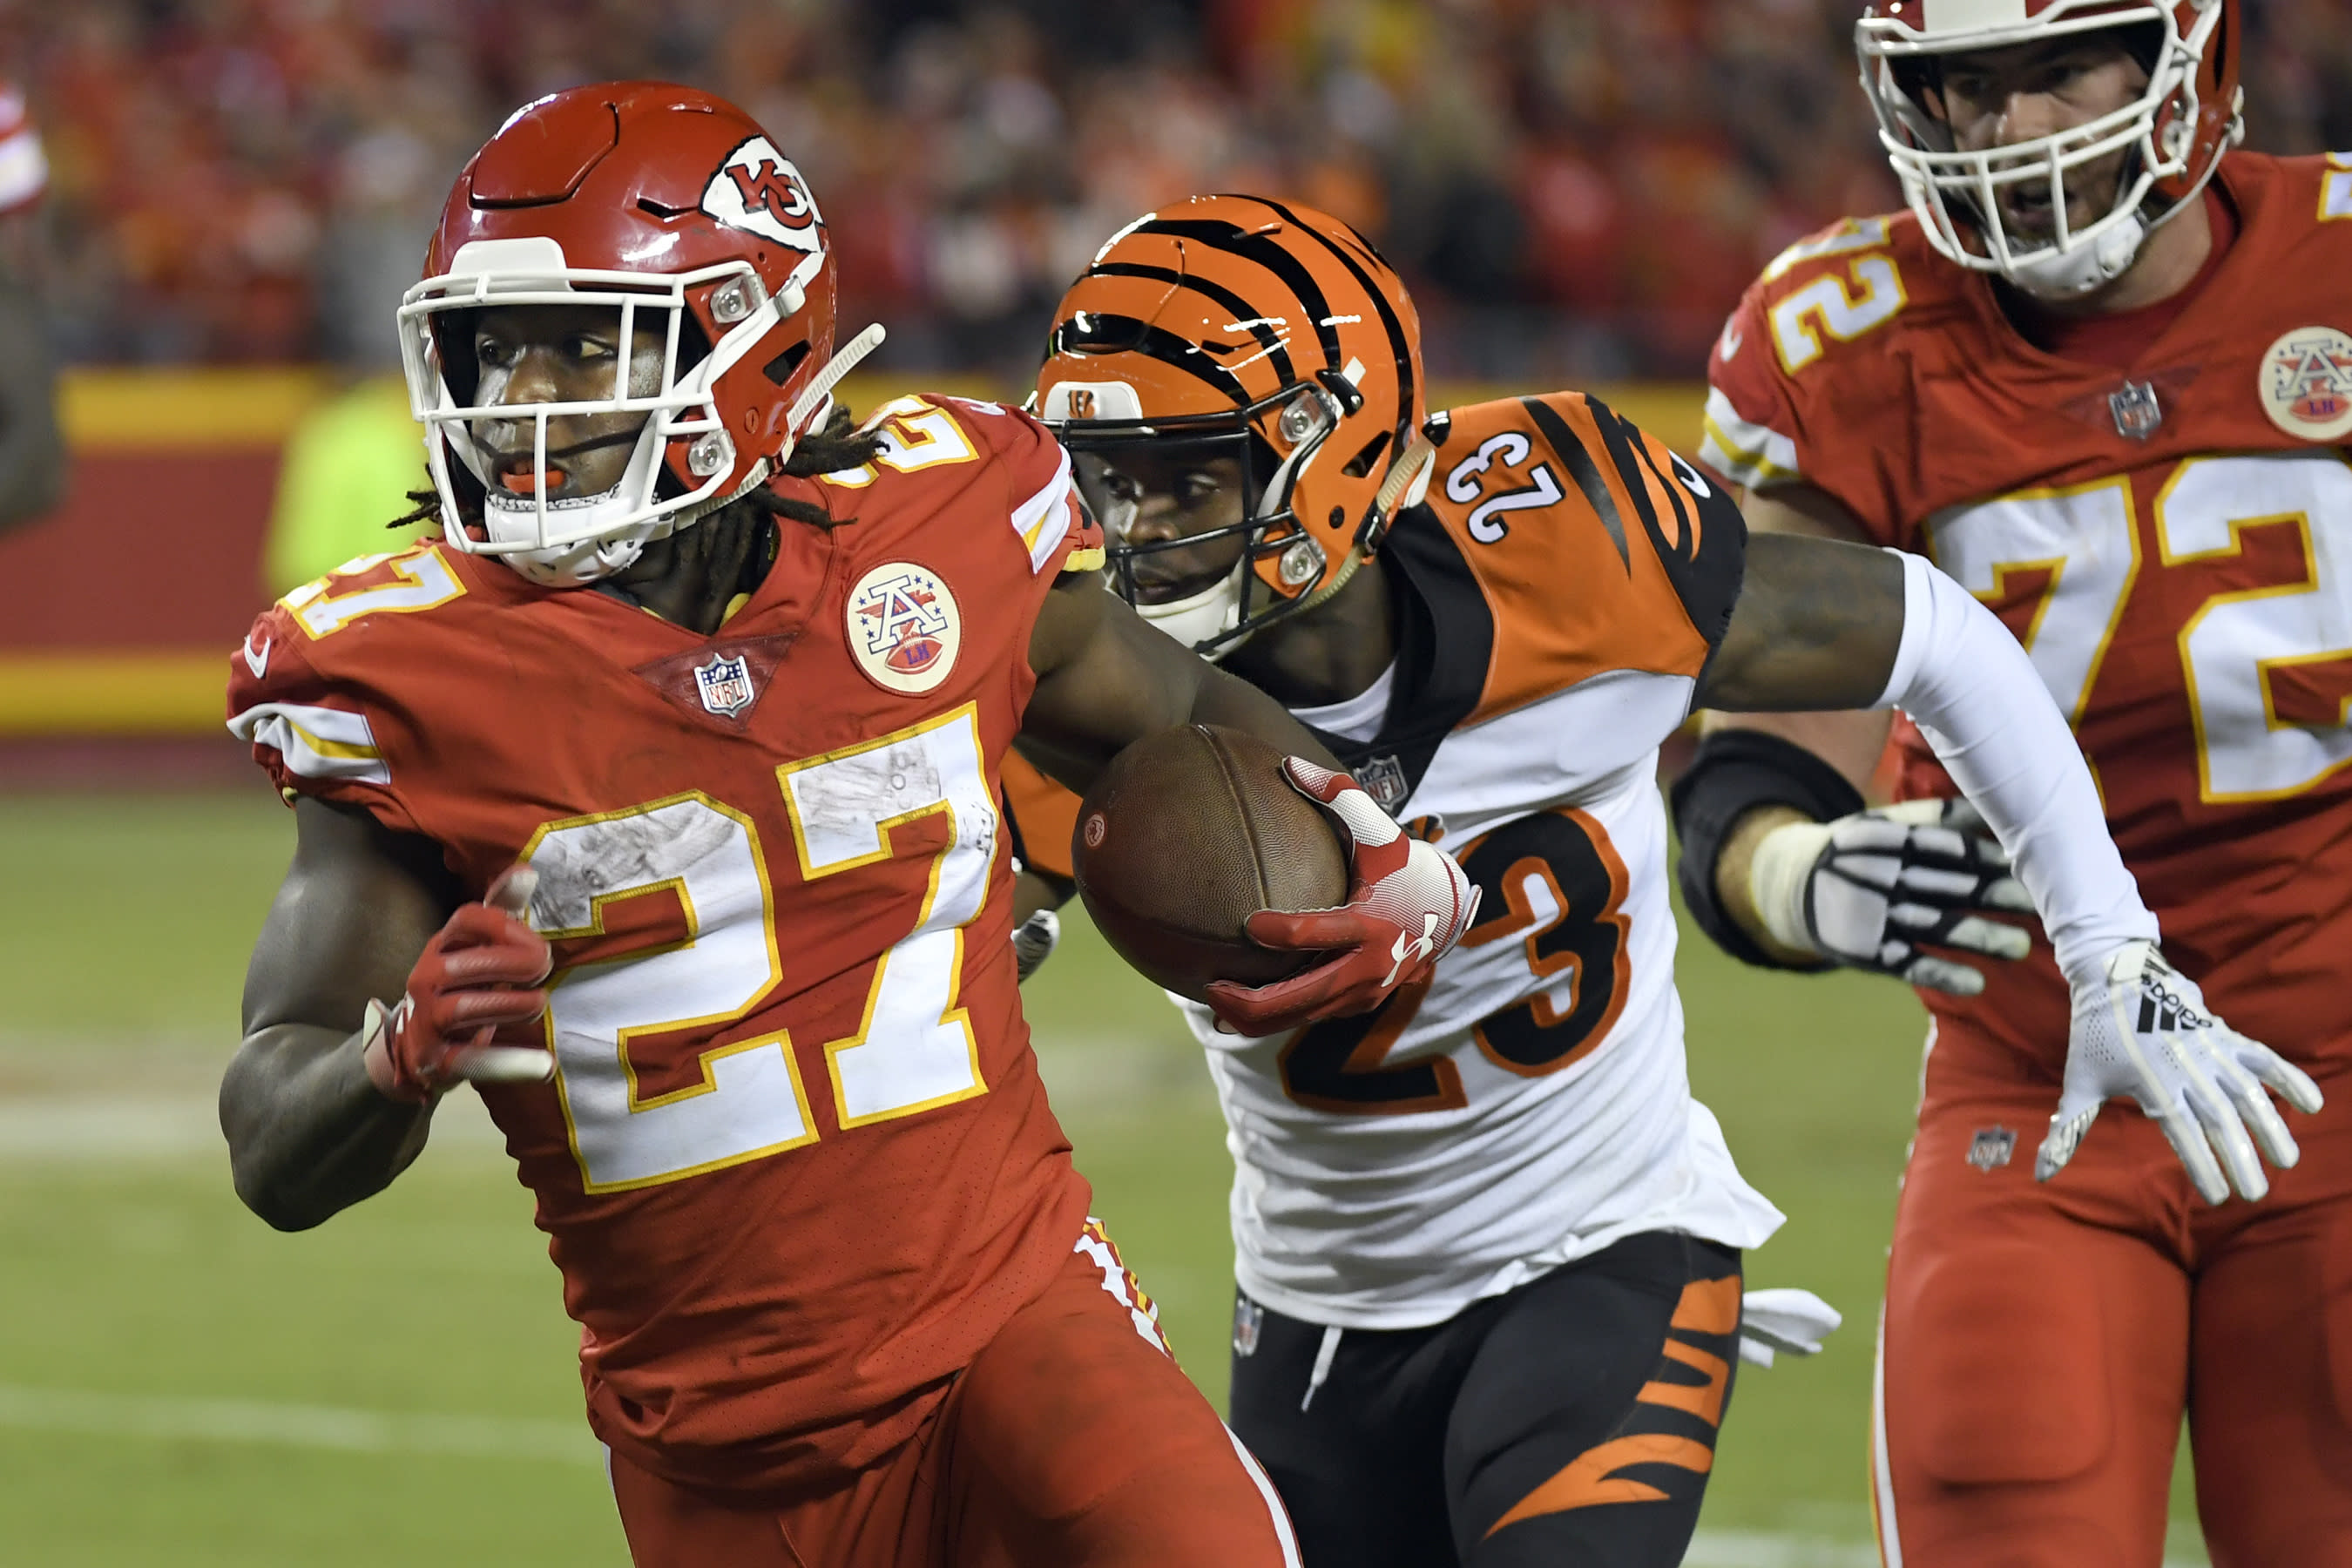 Kareem Hunt cut by Chiefs after video surfaces eba63fd65